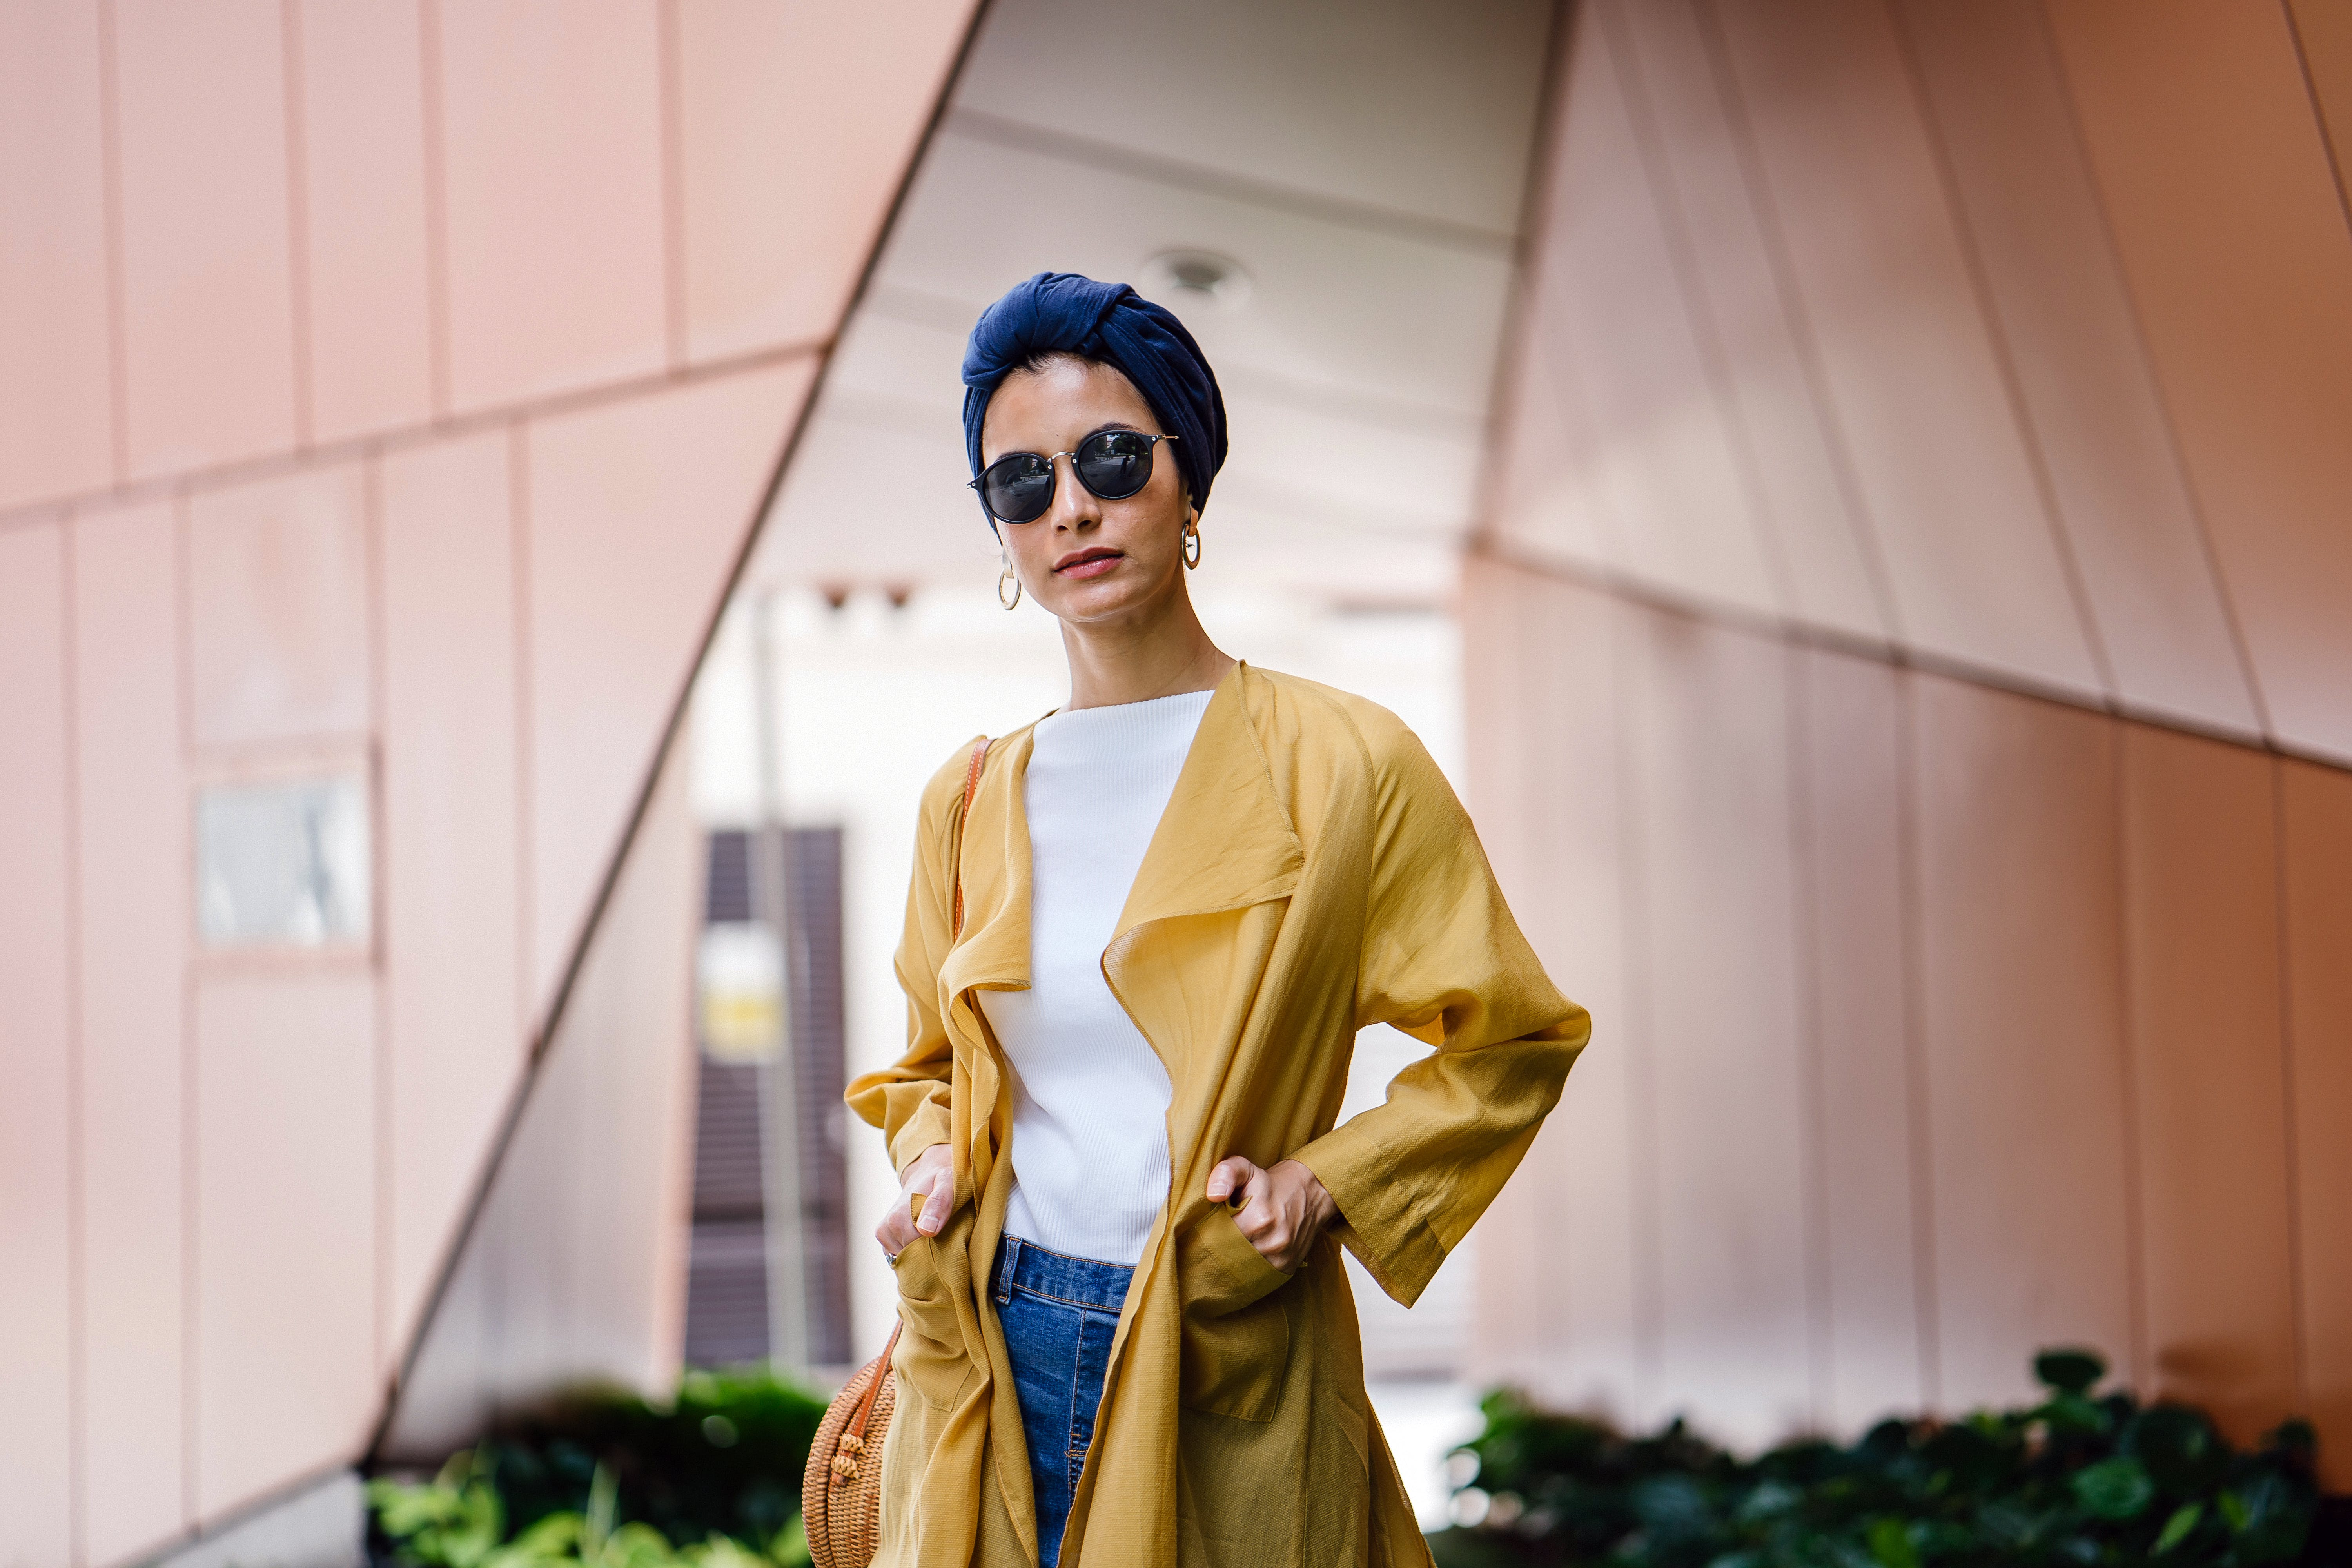 Stylish Woman Posing in Yellow Coat